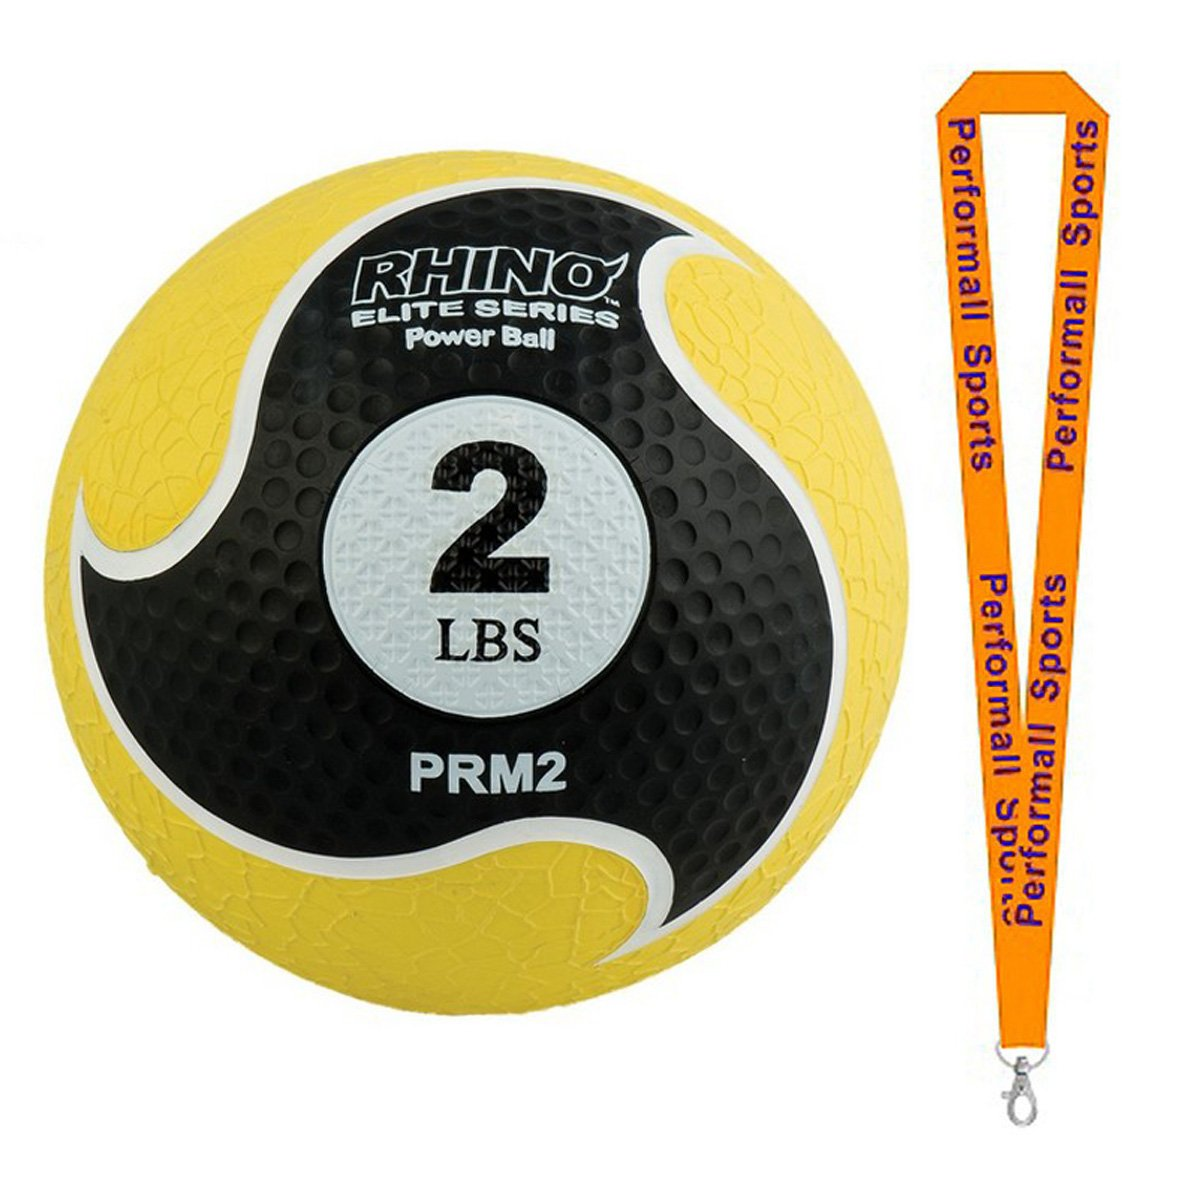 Amazon.com : Champion Sports Rhino Elite Medicine Balls Assorted Colors and Sizes Bundle with 1 Performall Lanyard : Sports & Outdoors